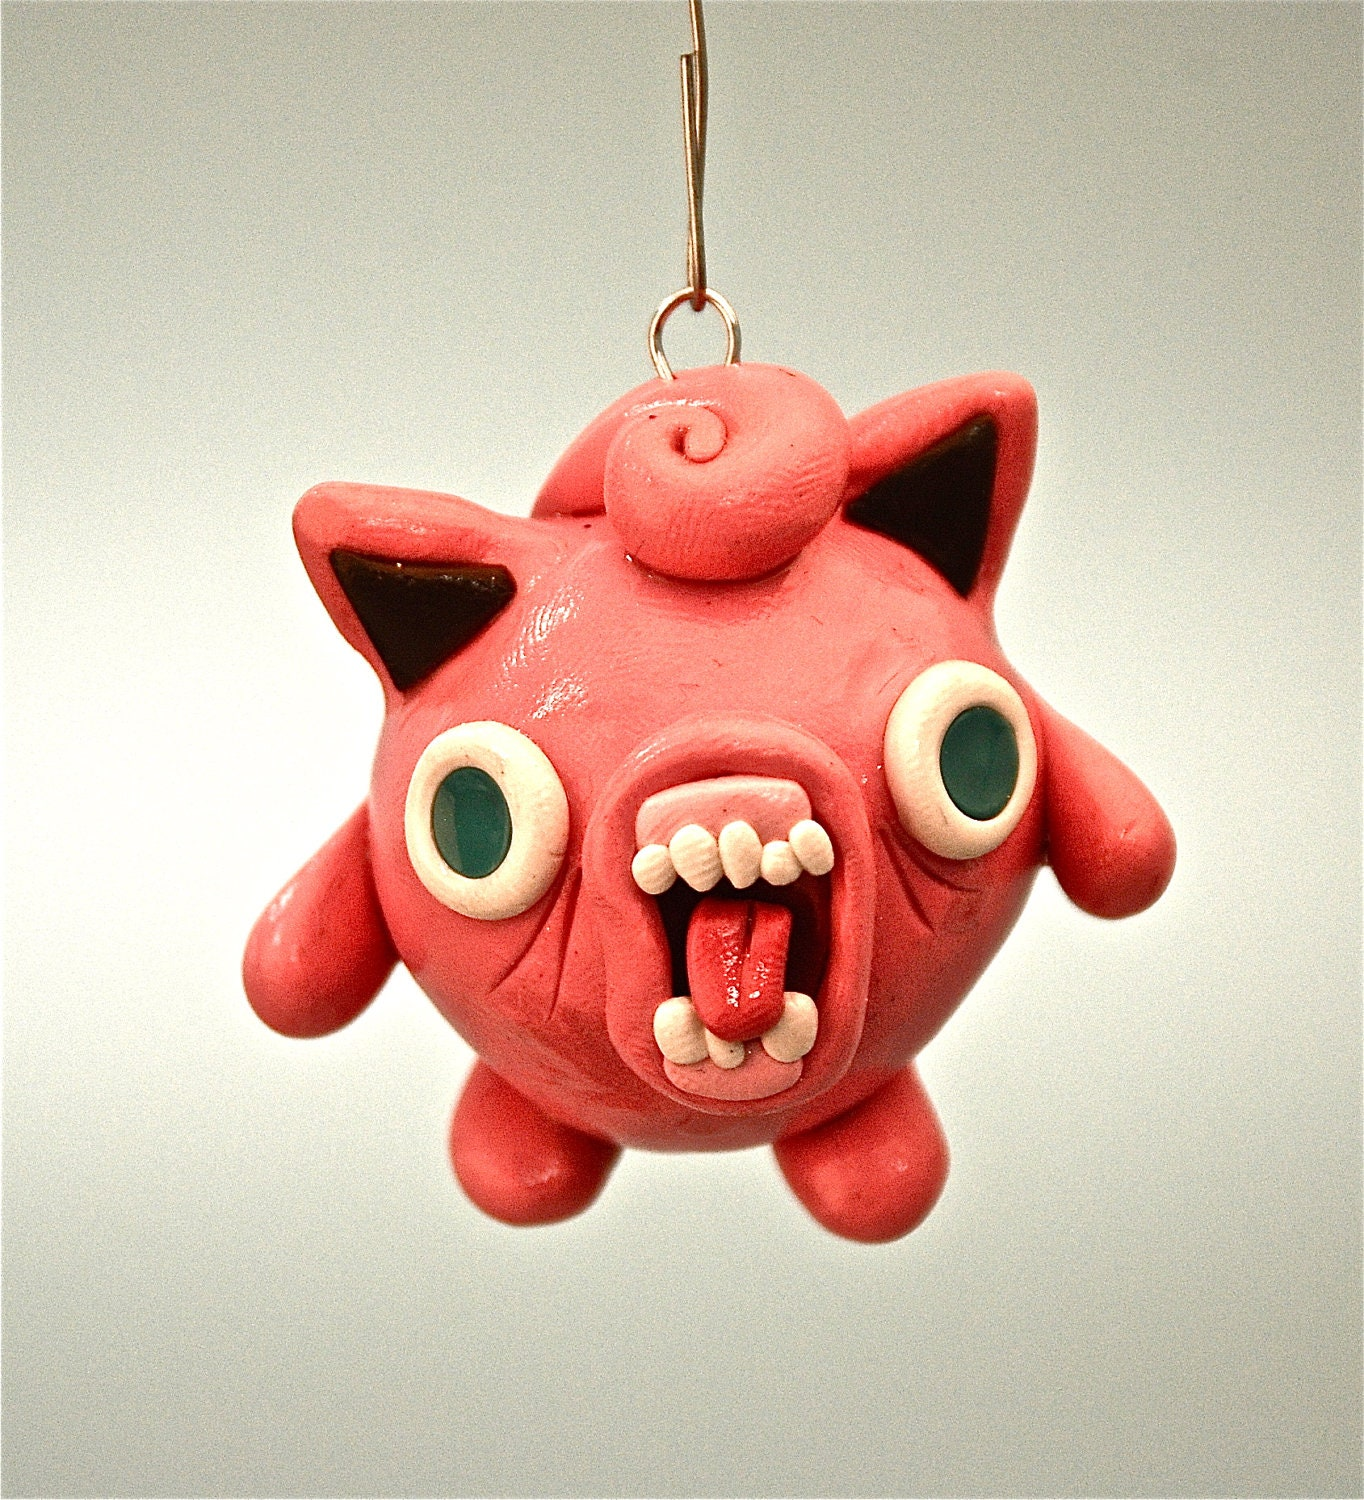 Ugly jigglypuff christmas ornament